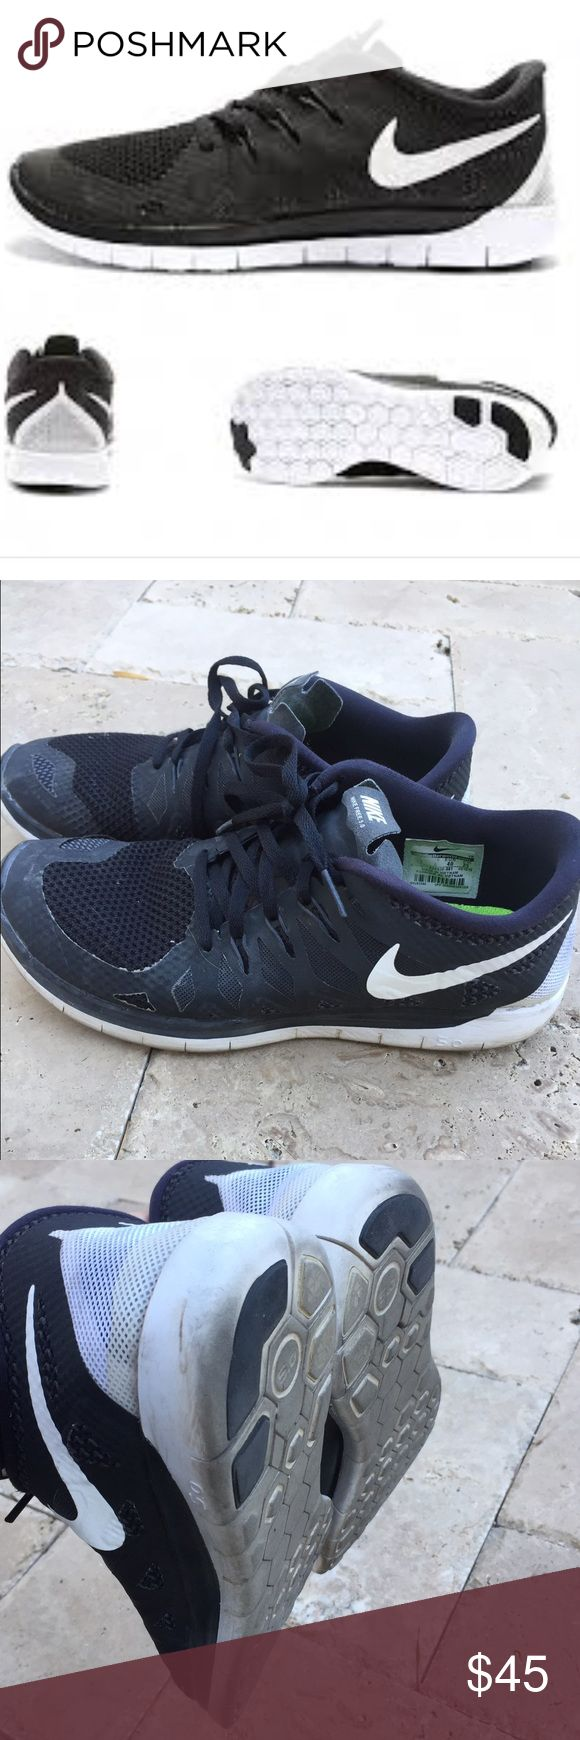 Nike free runners 5.0 in black size 7Y Gently used and in excellent condition. Only worn for about 6 month and maybe 1-2 a wk max. I rotate all my nikes throughout the wk. I have original box as well. I usually wear a 7.5 in women's nikes and 7 youth in juniors size. Nike Shoes Athletic Shoes